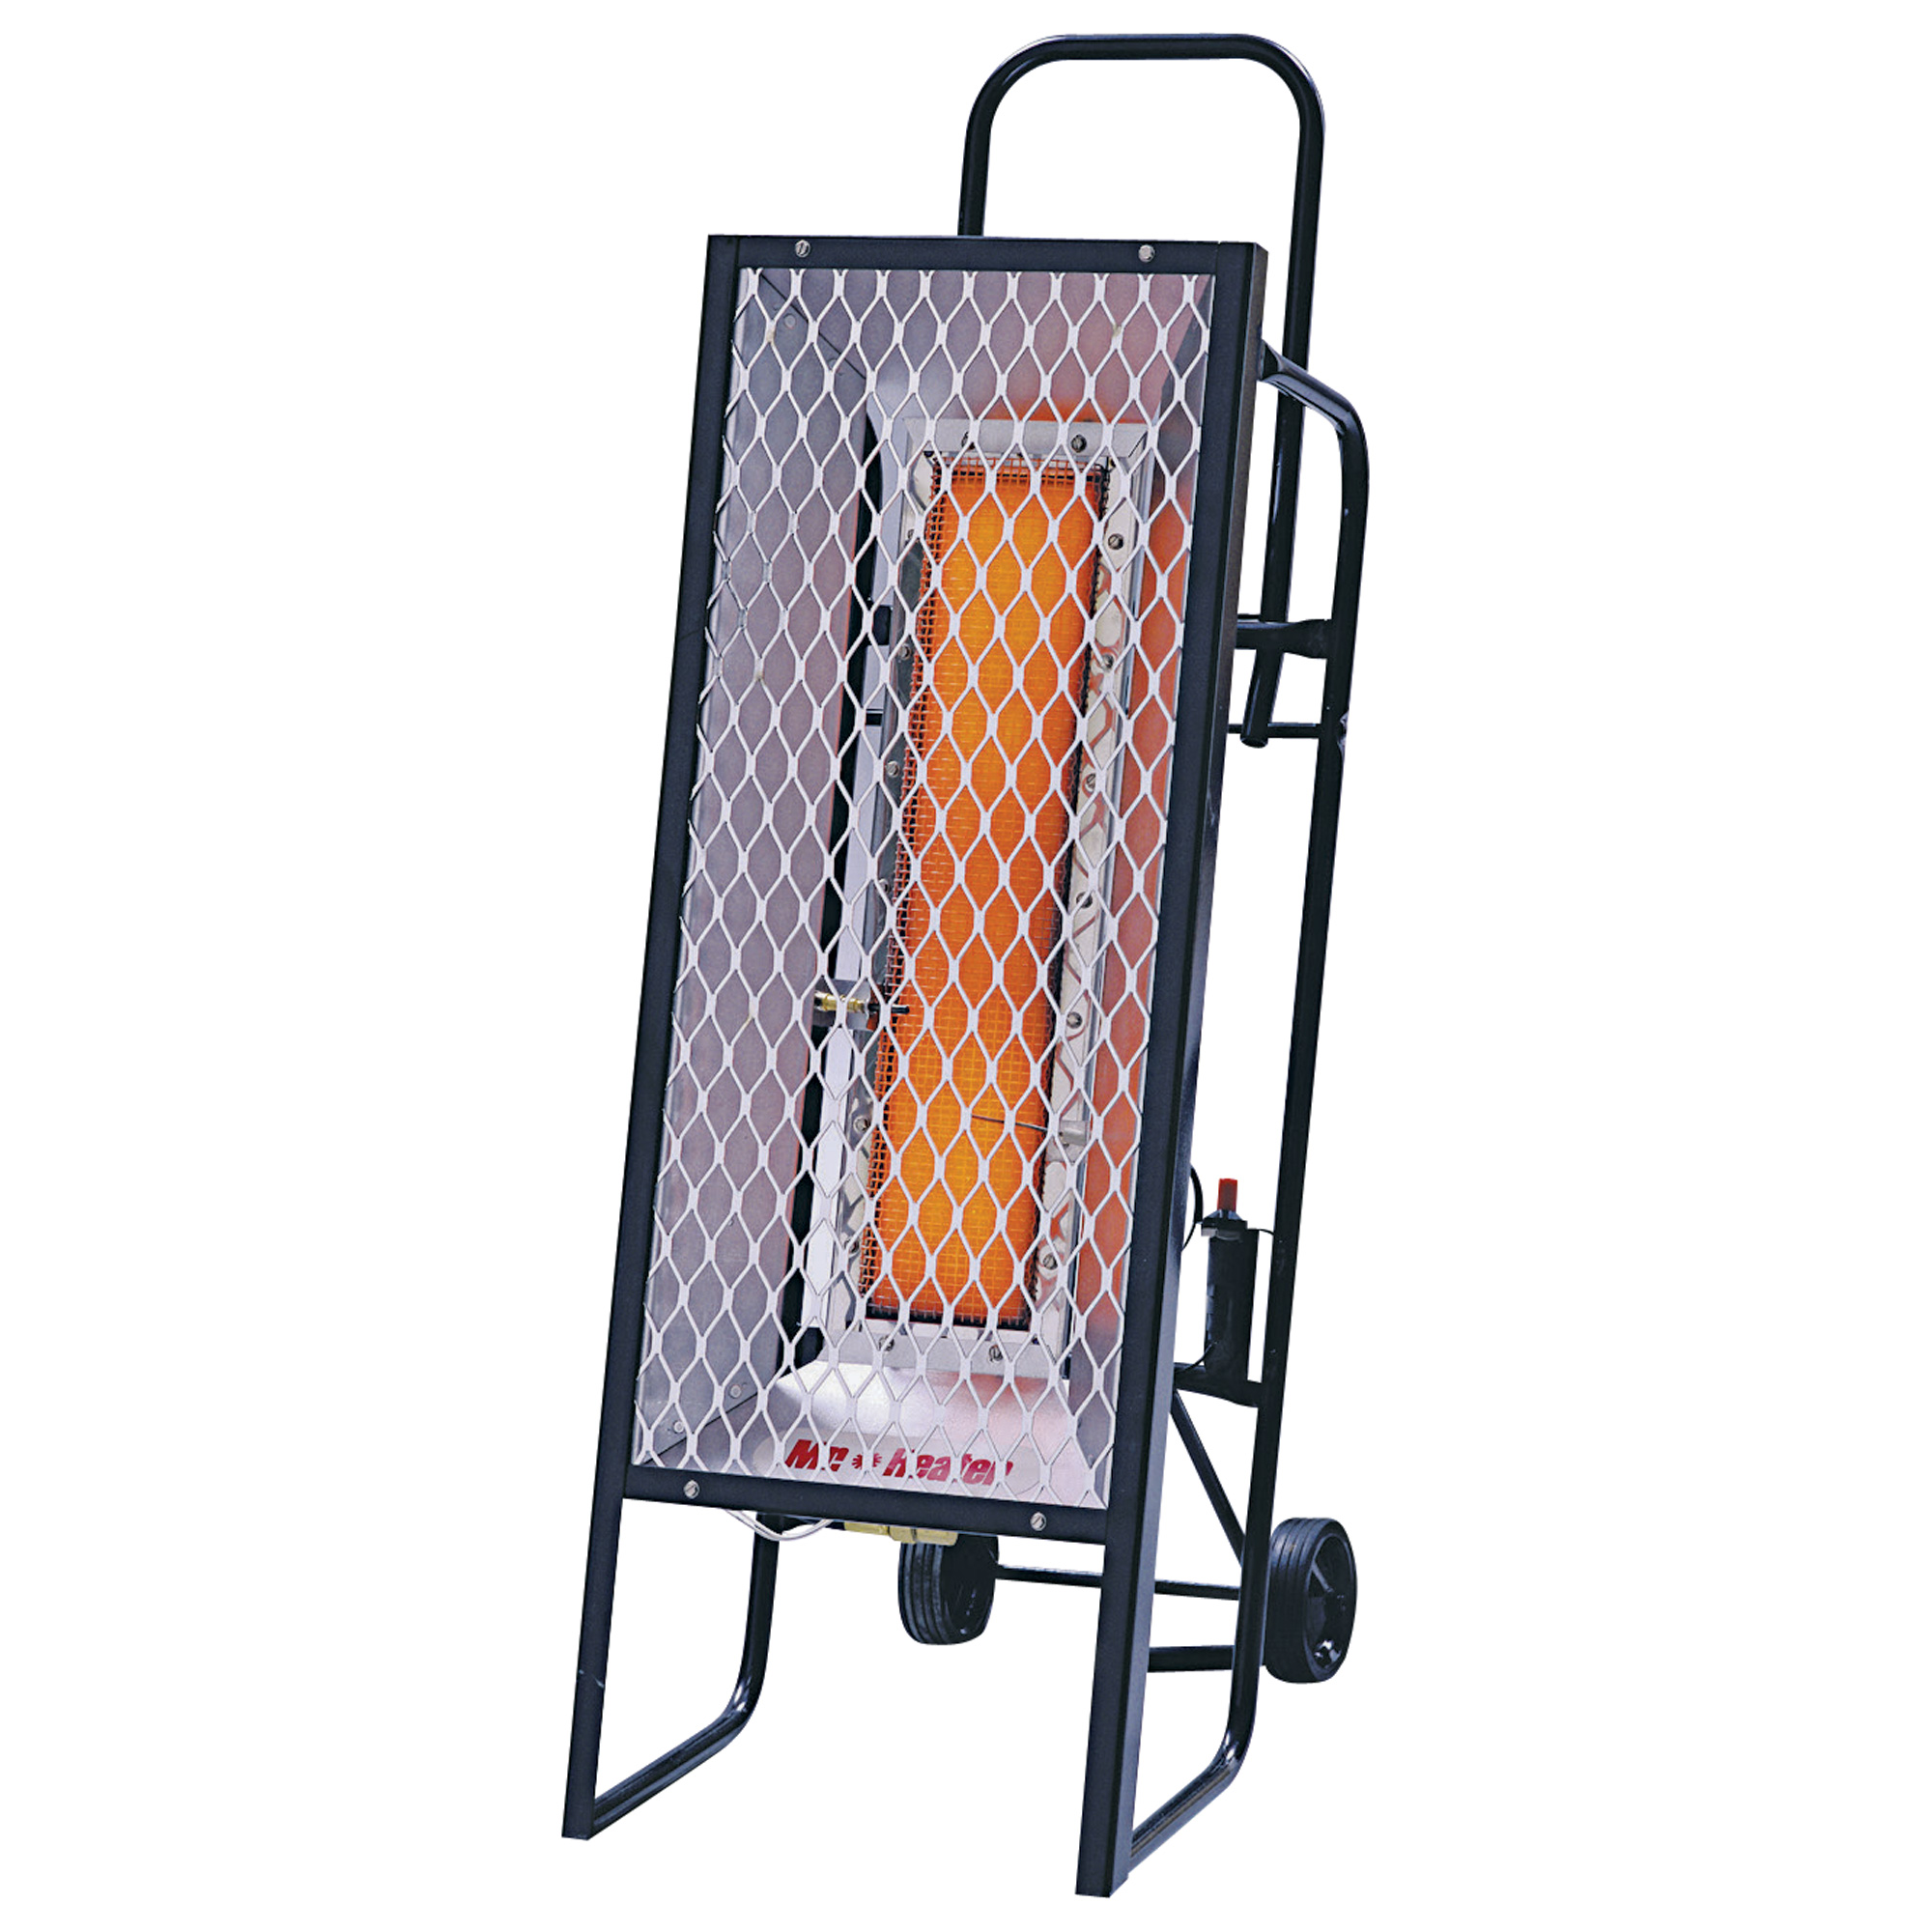 Outdoor Radiant Propane Heater Image